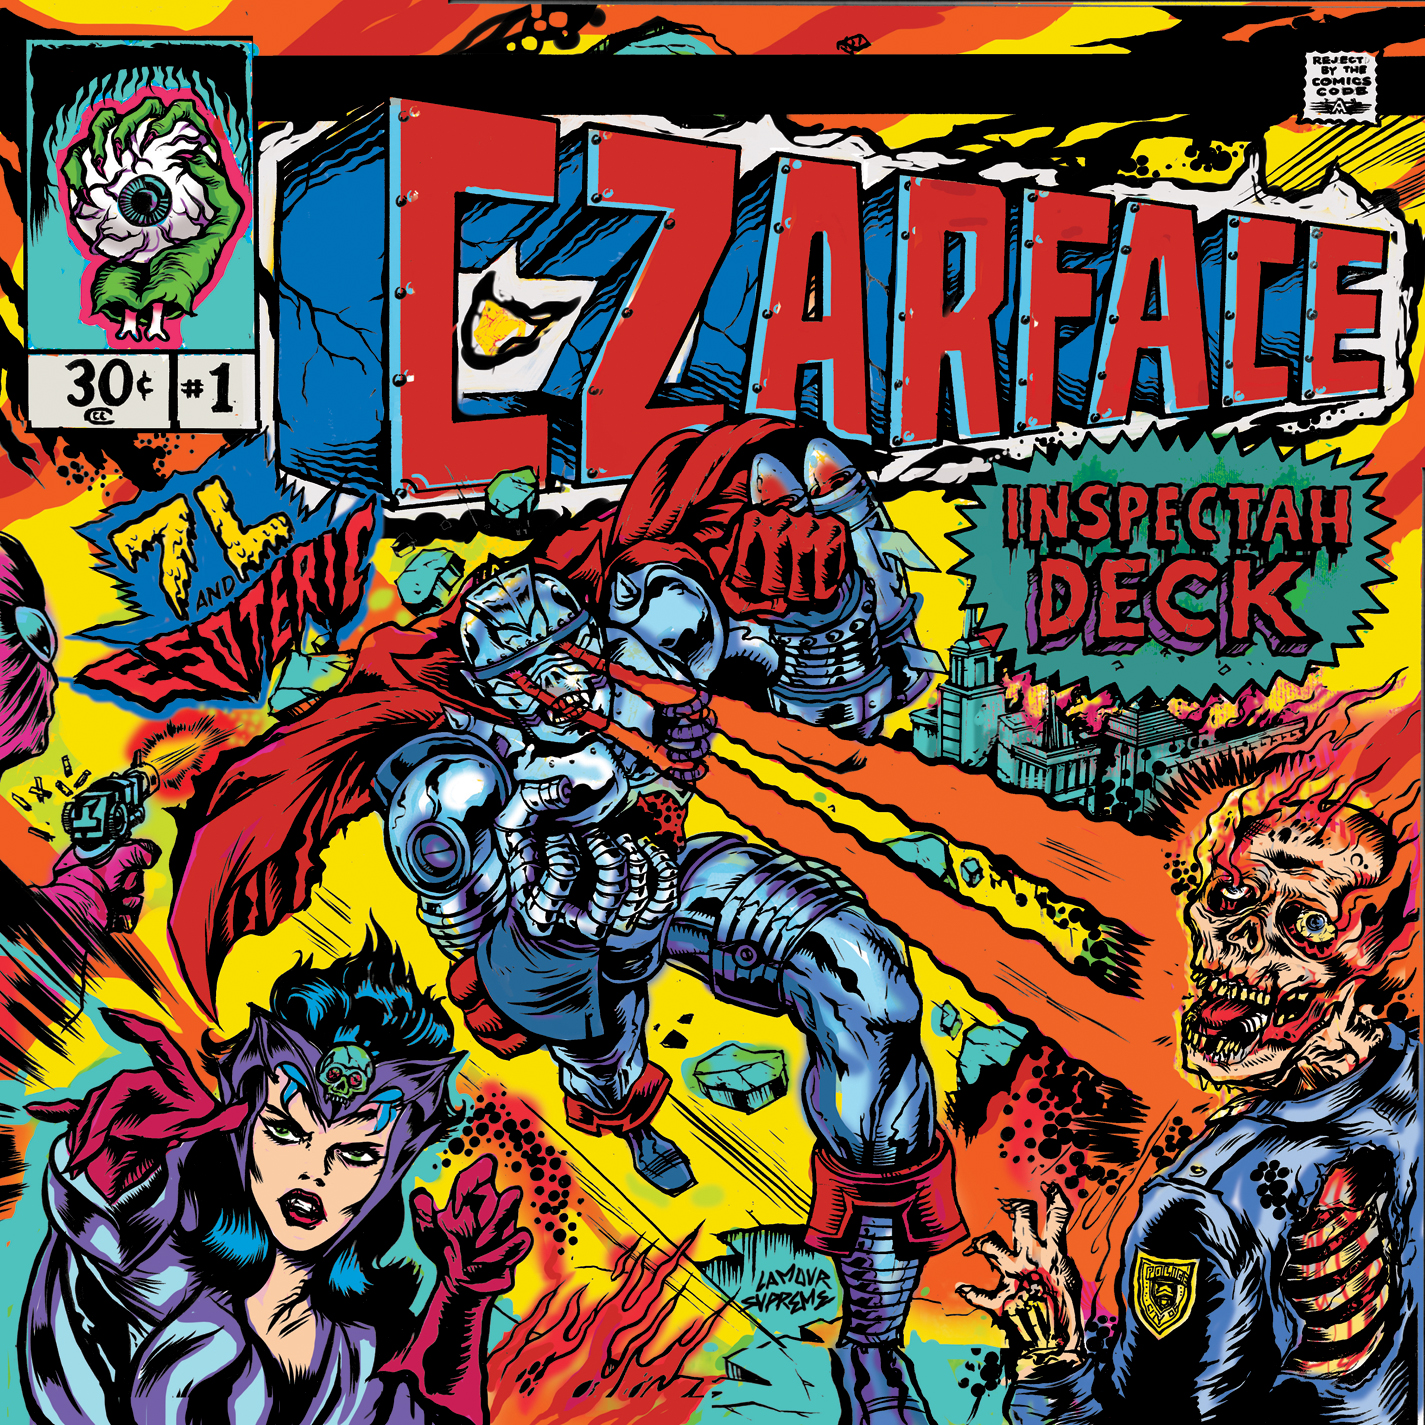 czarface-album-artwork-01